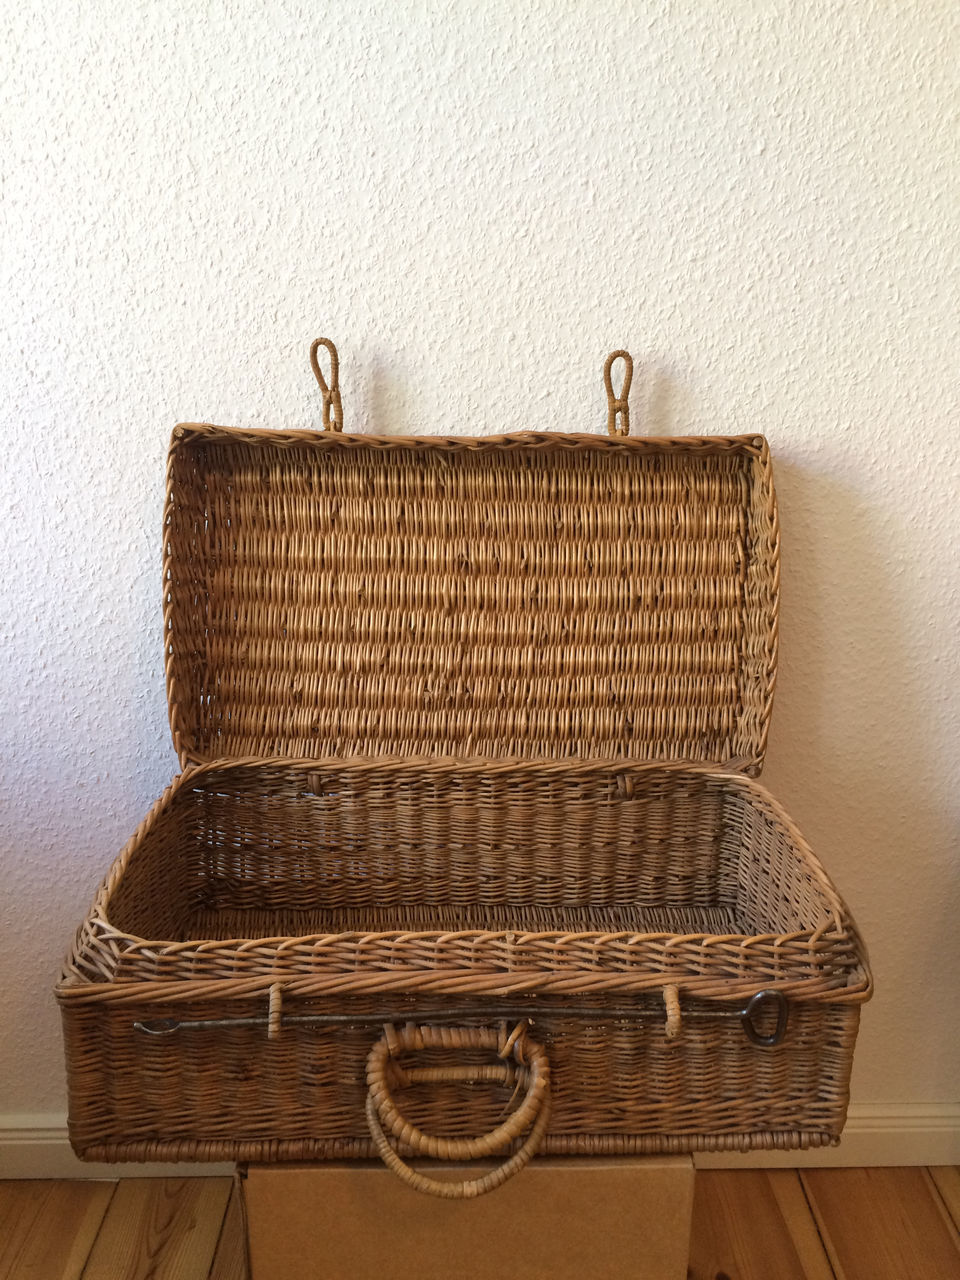 basket, old-fashioned, wood - material, indoors, whicker, no people, furniture, newspaper, close-up, day